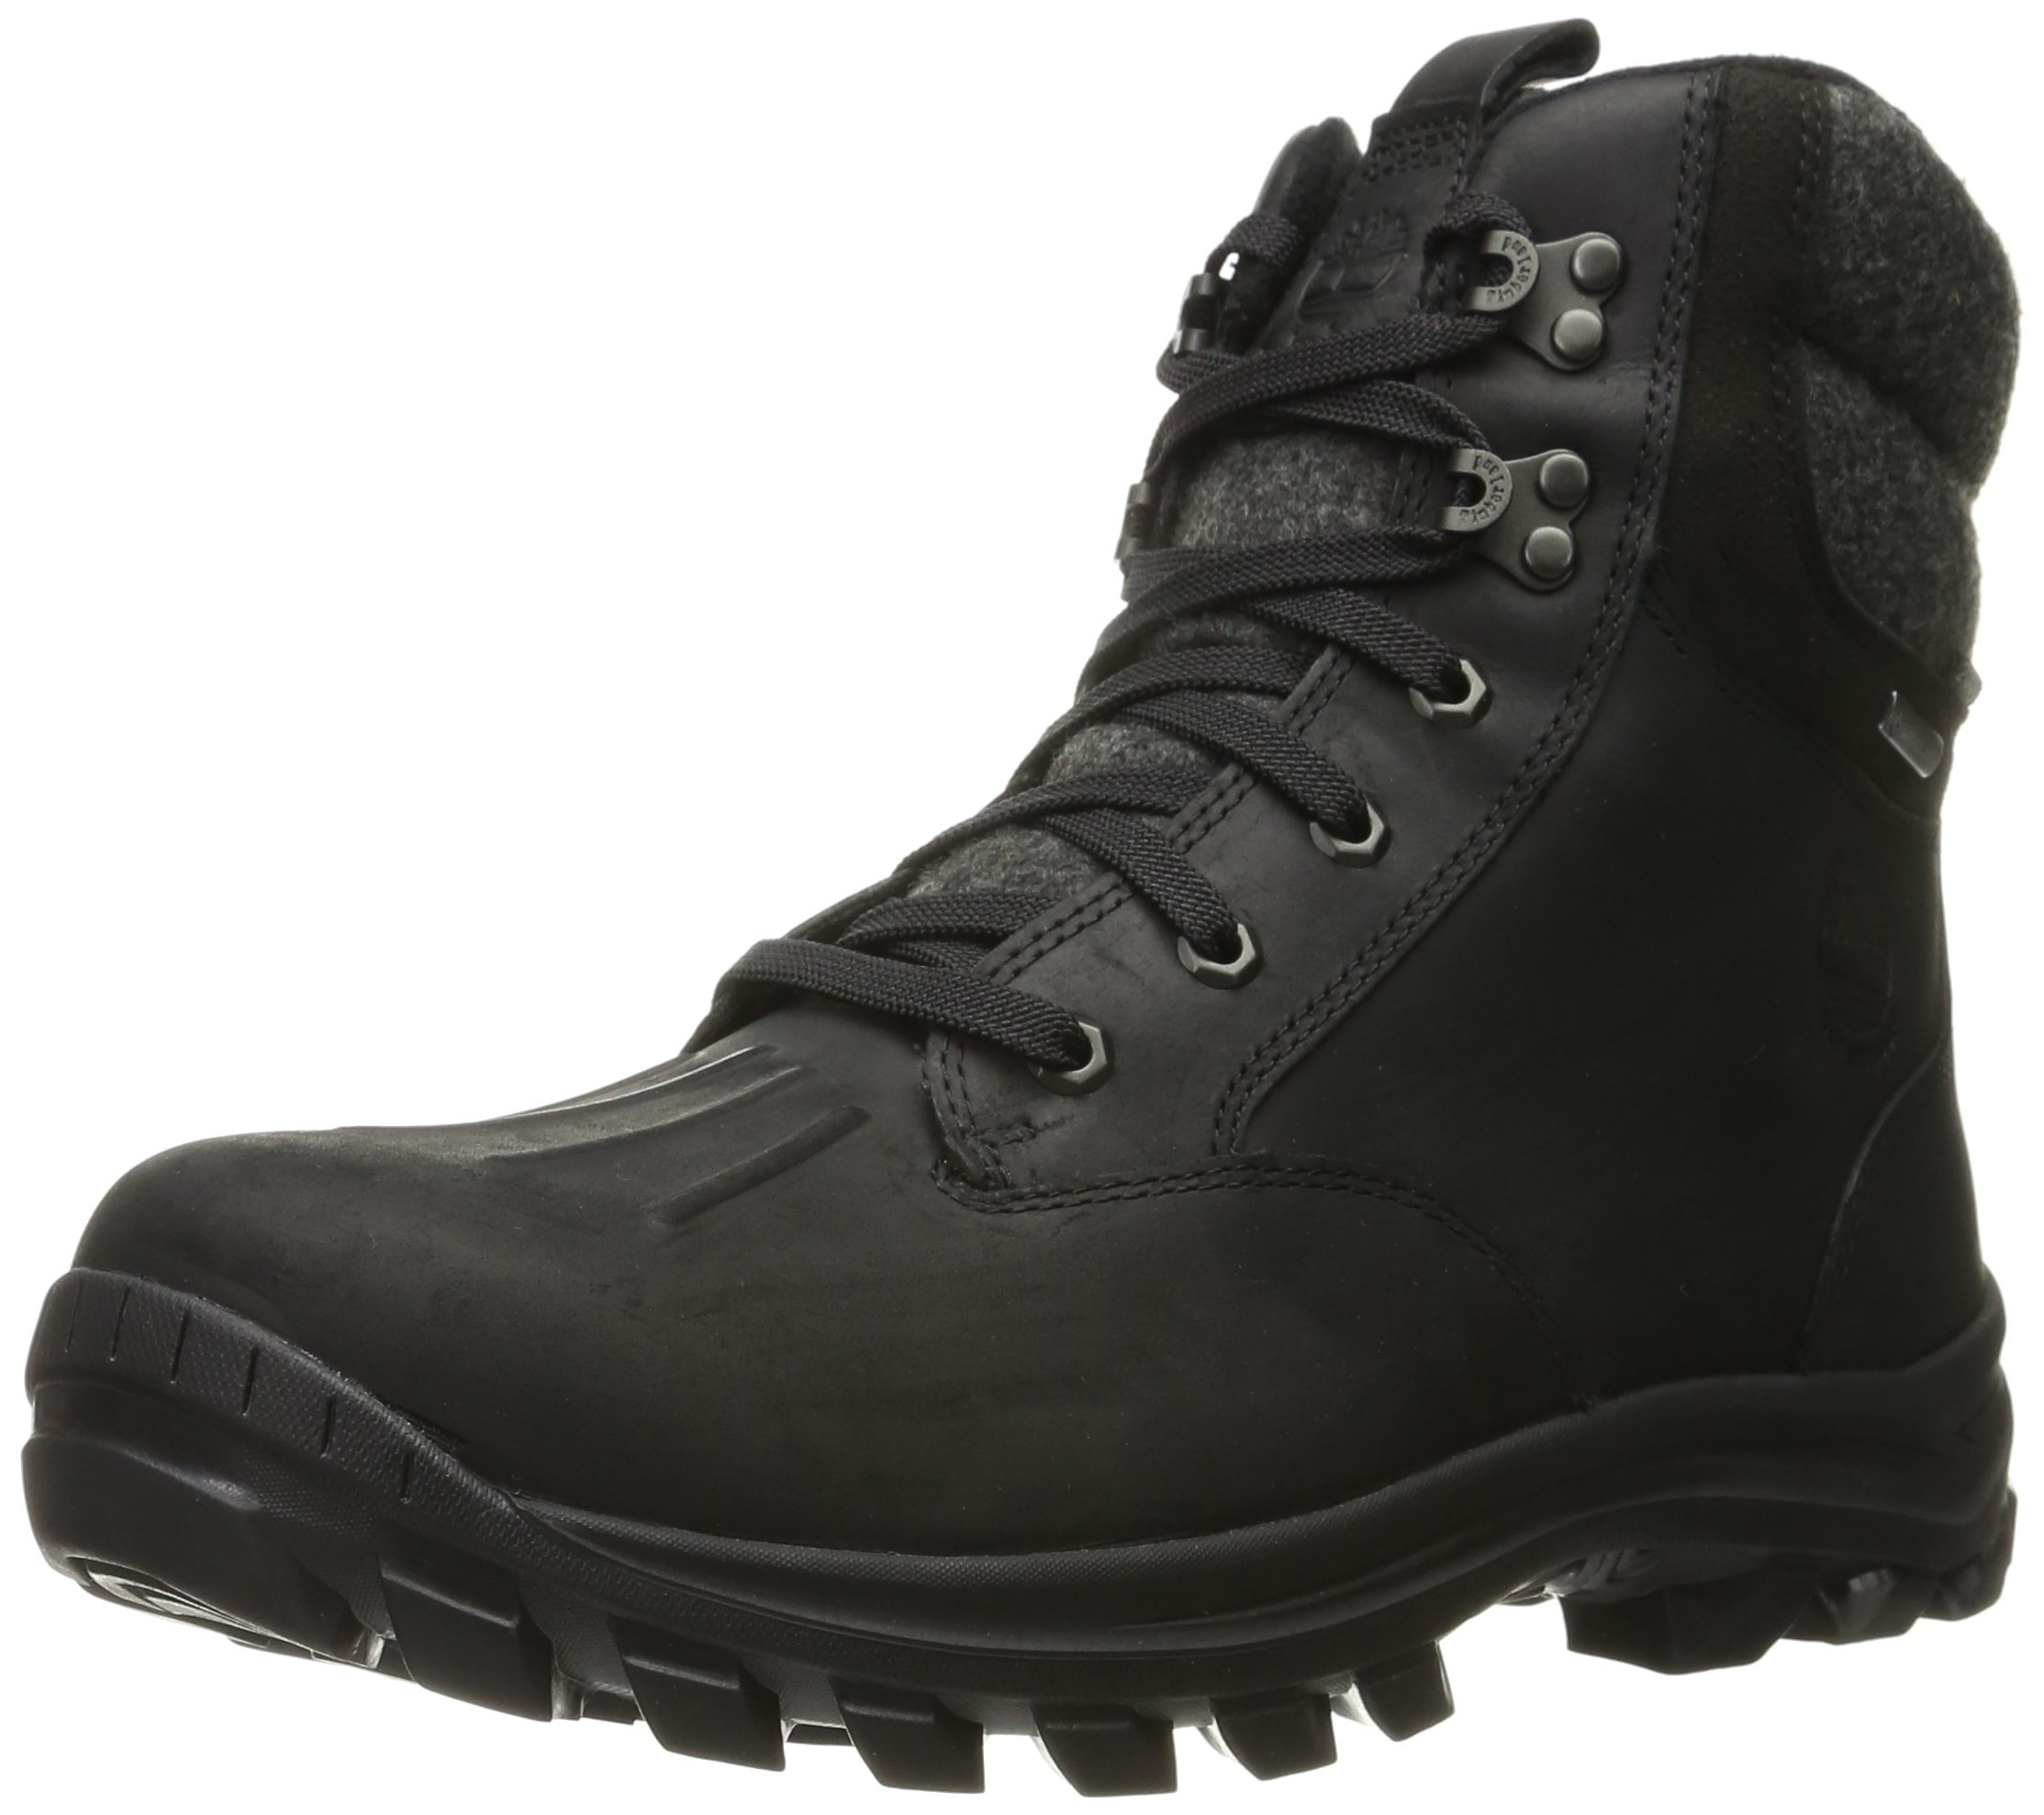 Timberland Men's Chillberg Mid Waterproof Insulated Snow Boot, Black Connection Full Grain, 10 M US by Timberland